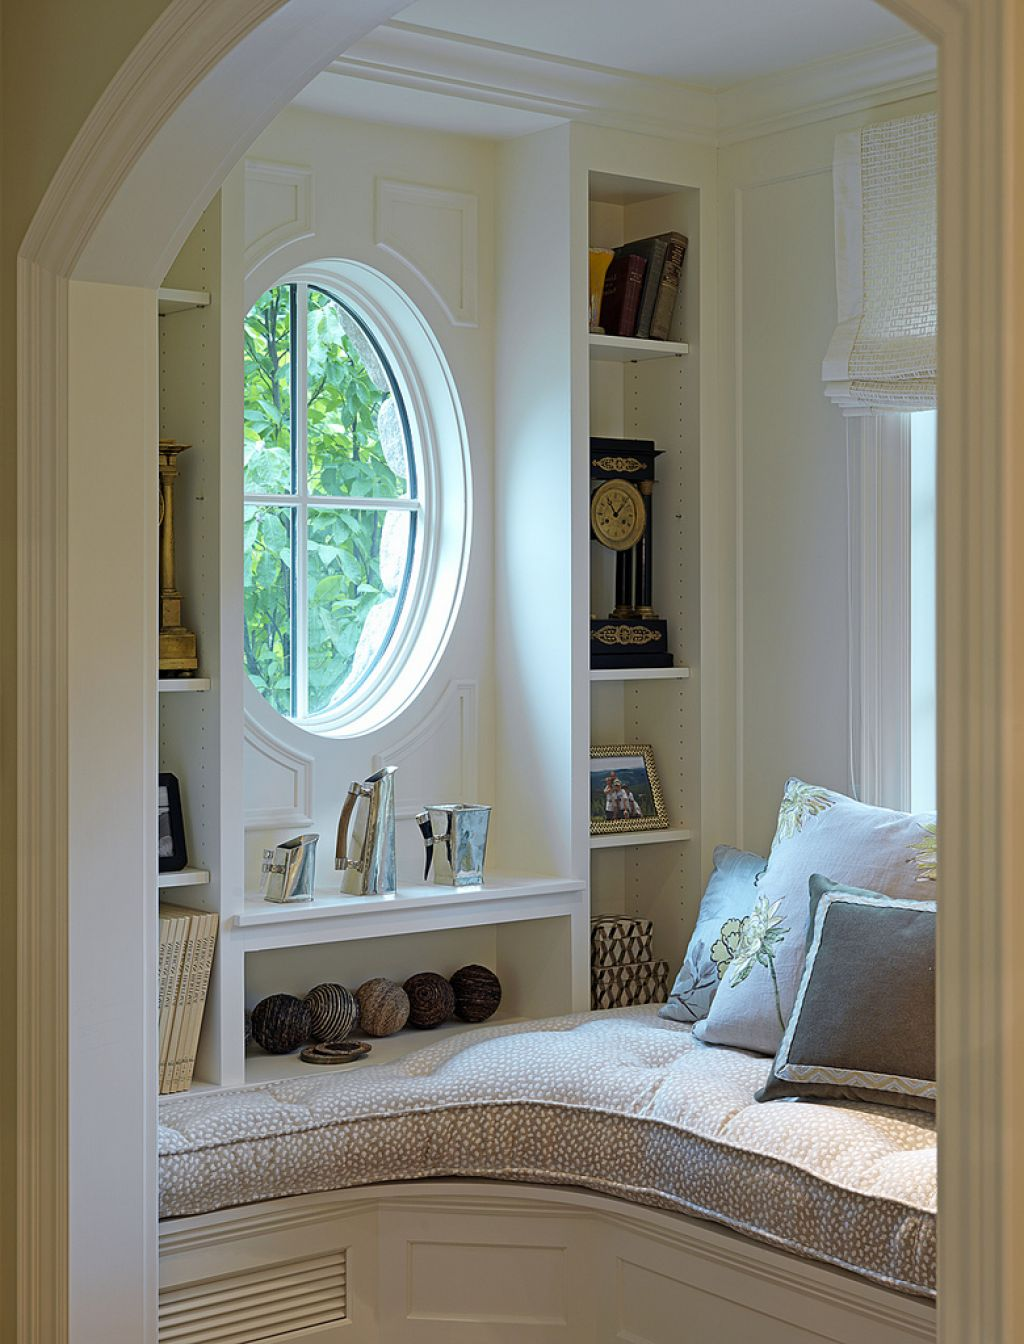 Round windows make the reading nook special and charming